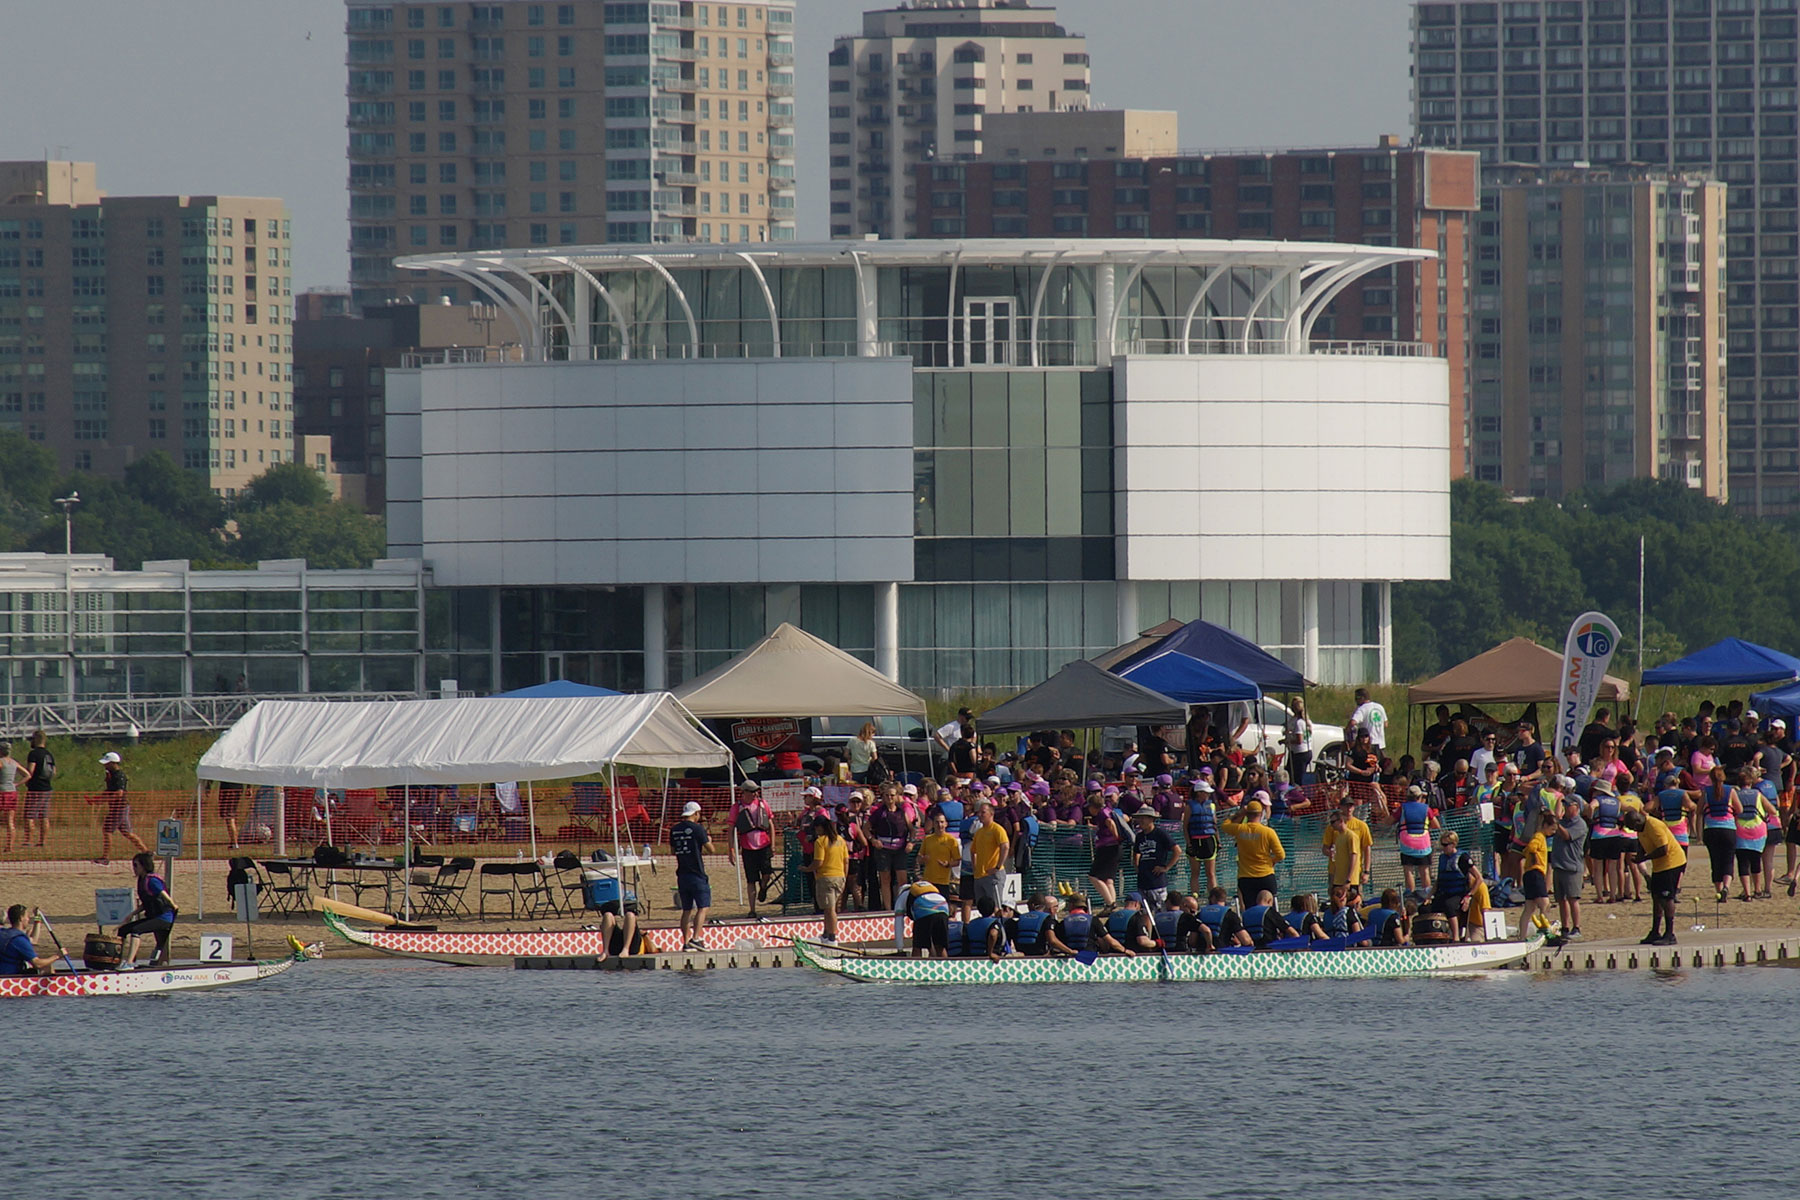 03_081118_dragonboat_027